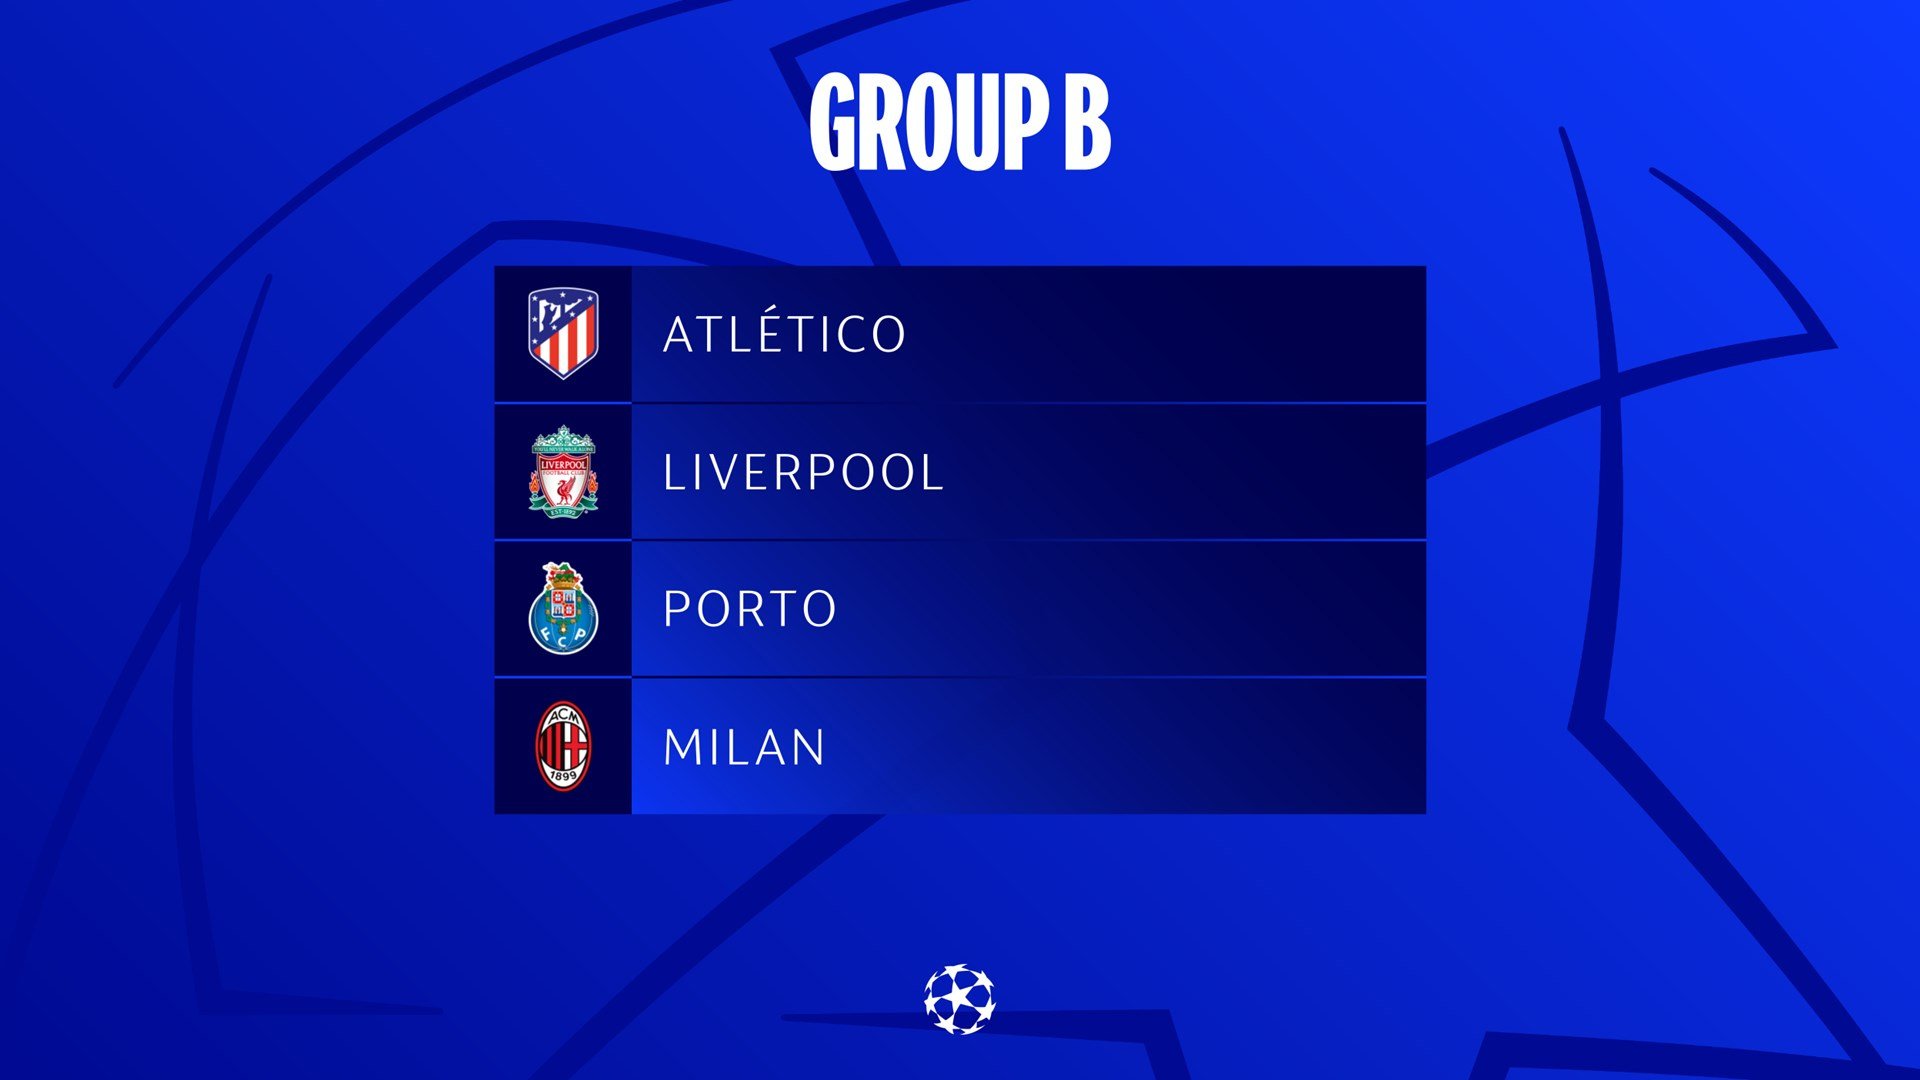 Group A and Group B in Champions League draw 2021/22- Which is the group of death?